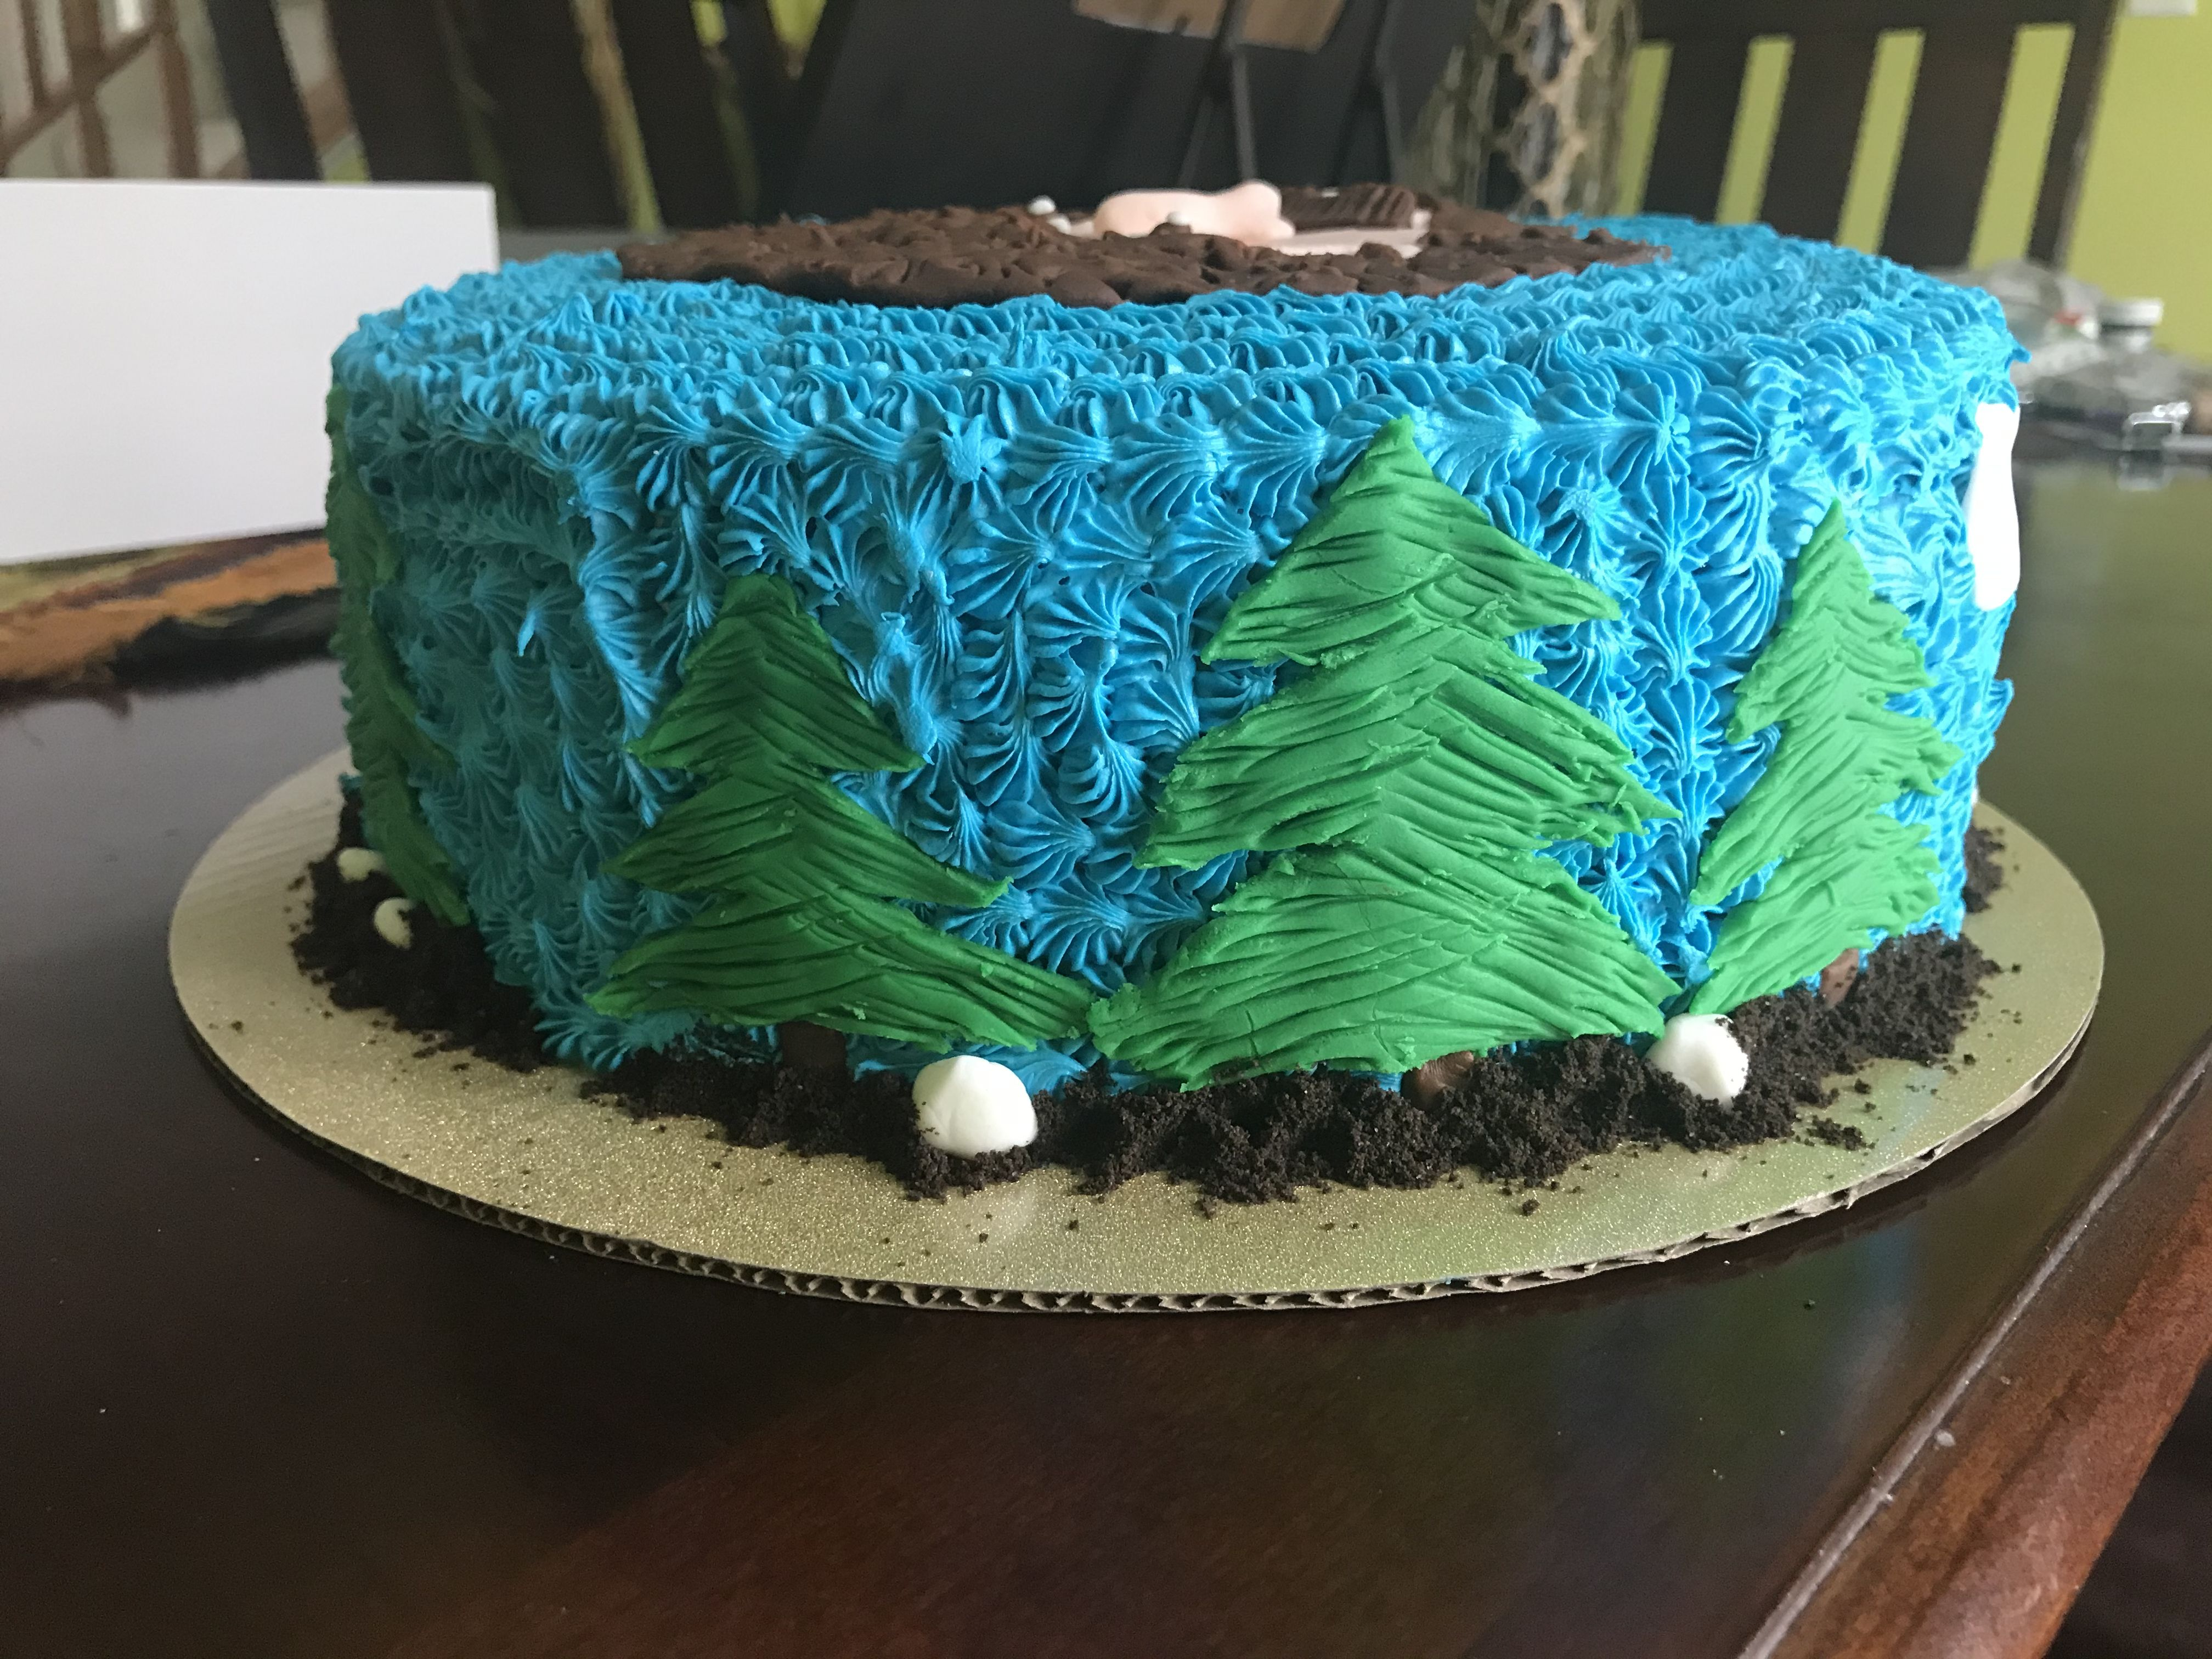 Pin by Stacey TucciWymer on Cakes by Stacey in 2020